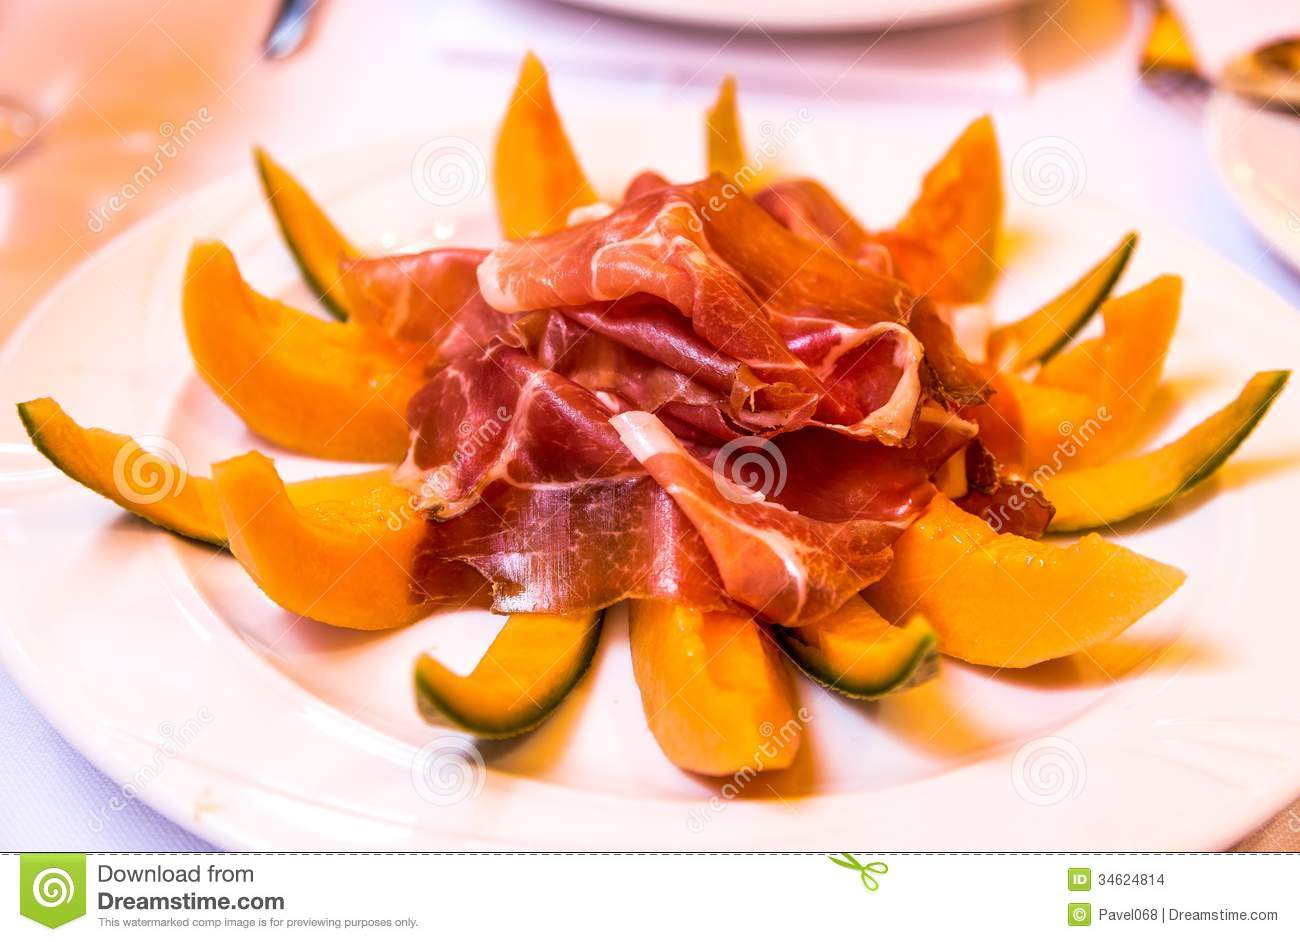 Stock Images: Parma ham and melon from Bologna, Italy